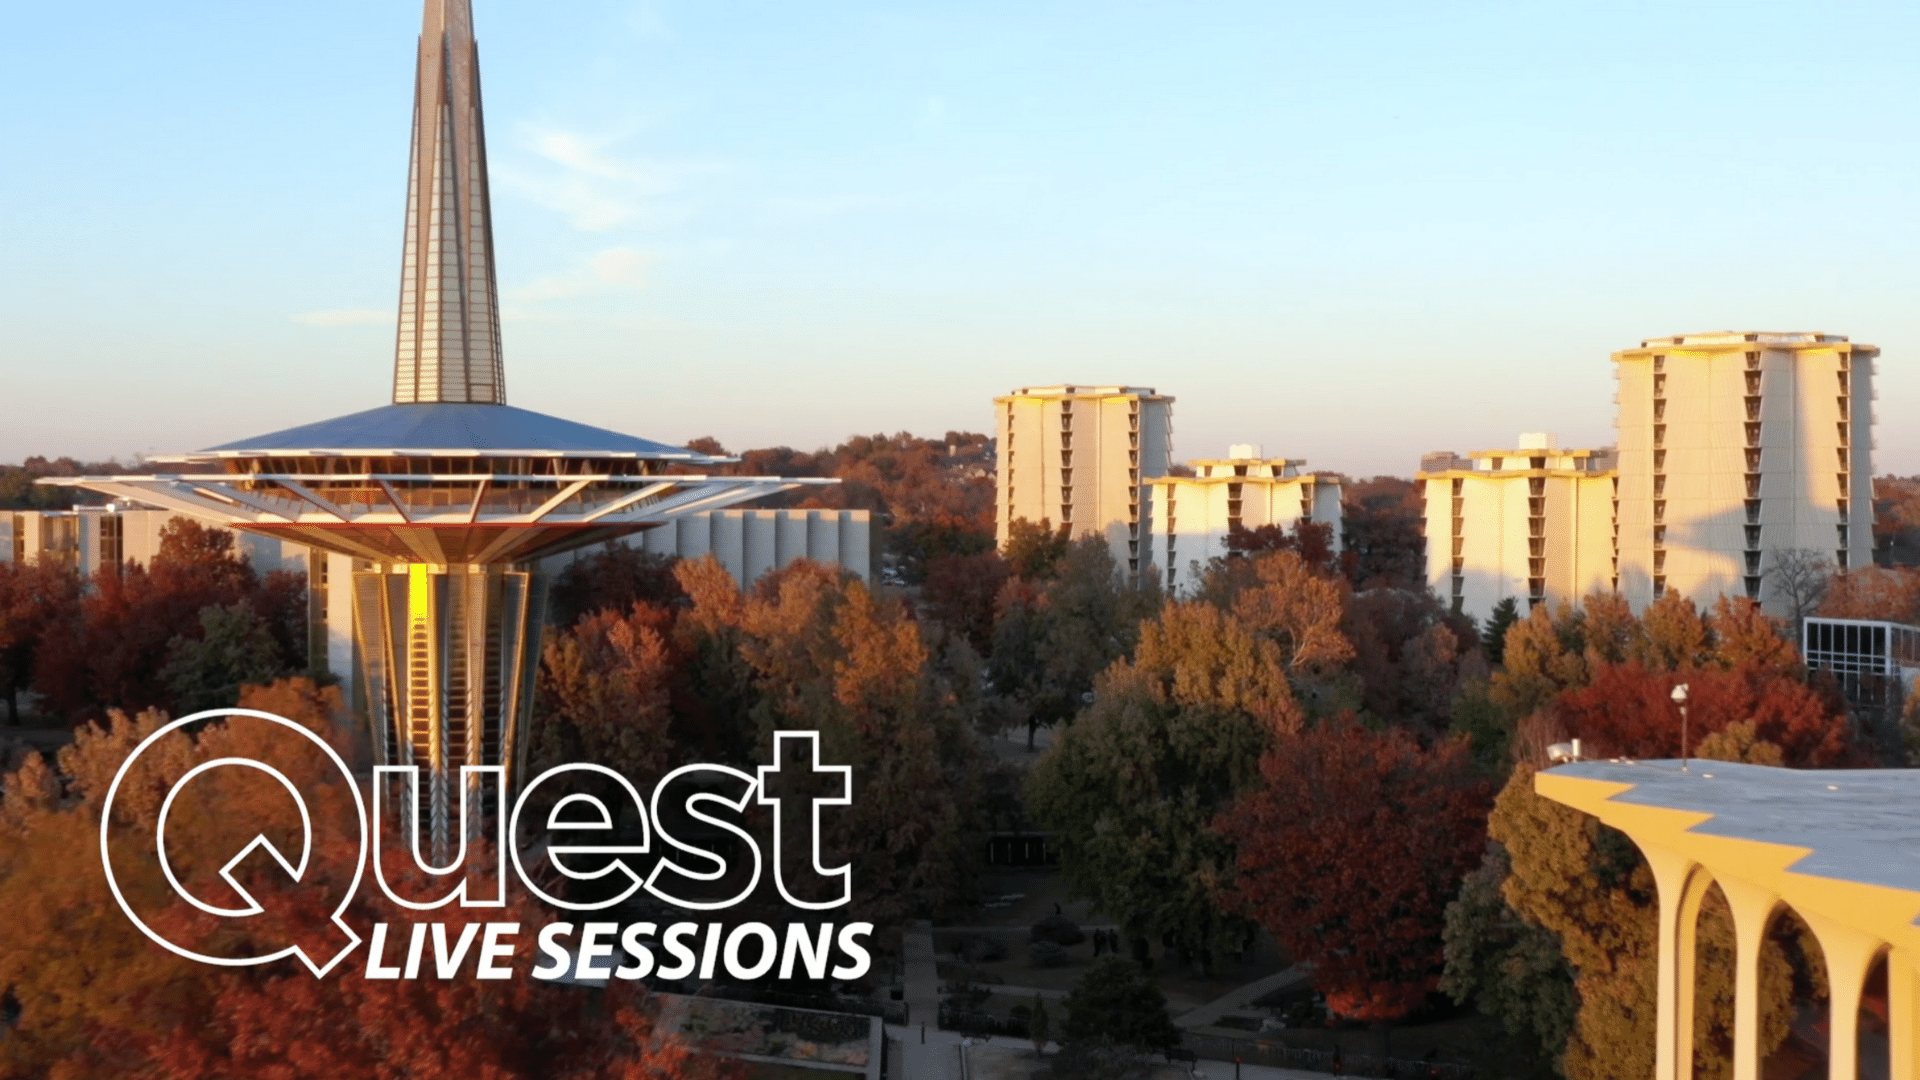 Quest Live Sessions